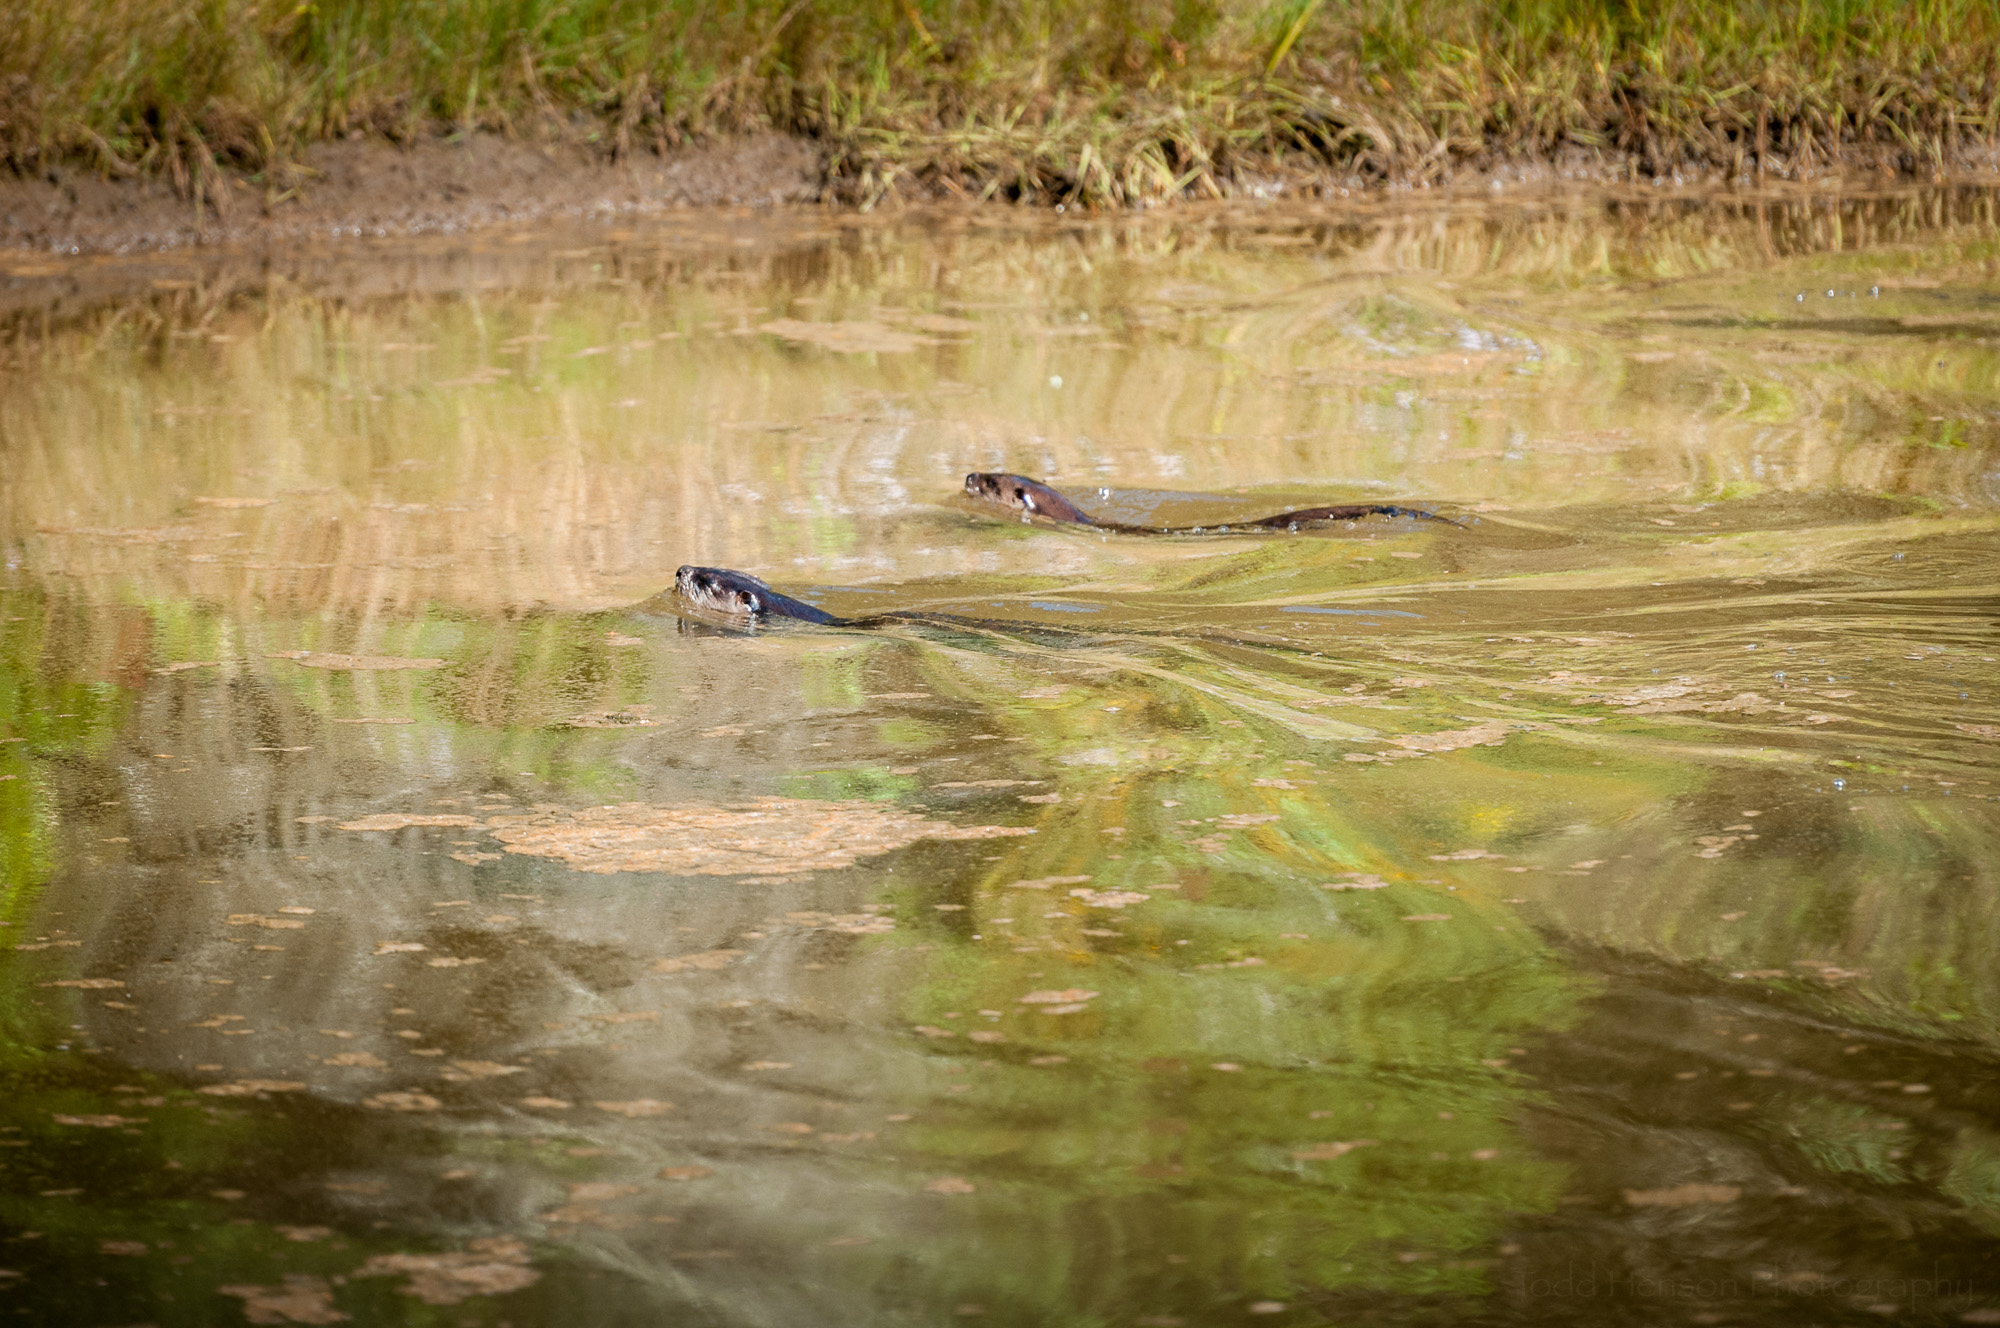 Two river otter swimming. The closer, darker one, is the mother. The other is a young otter.